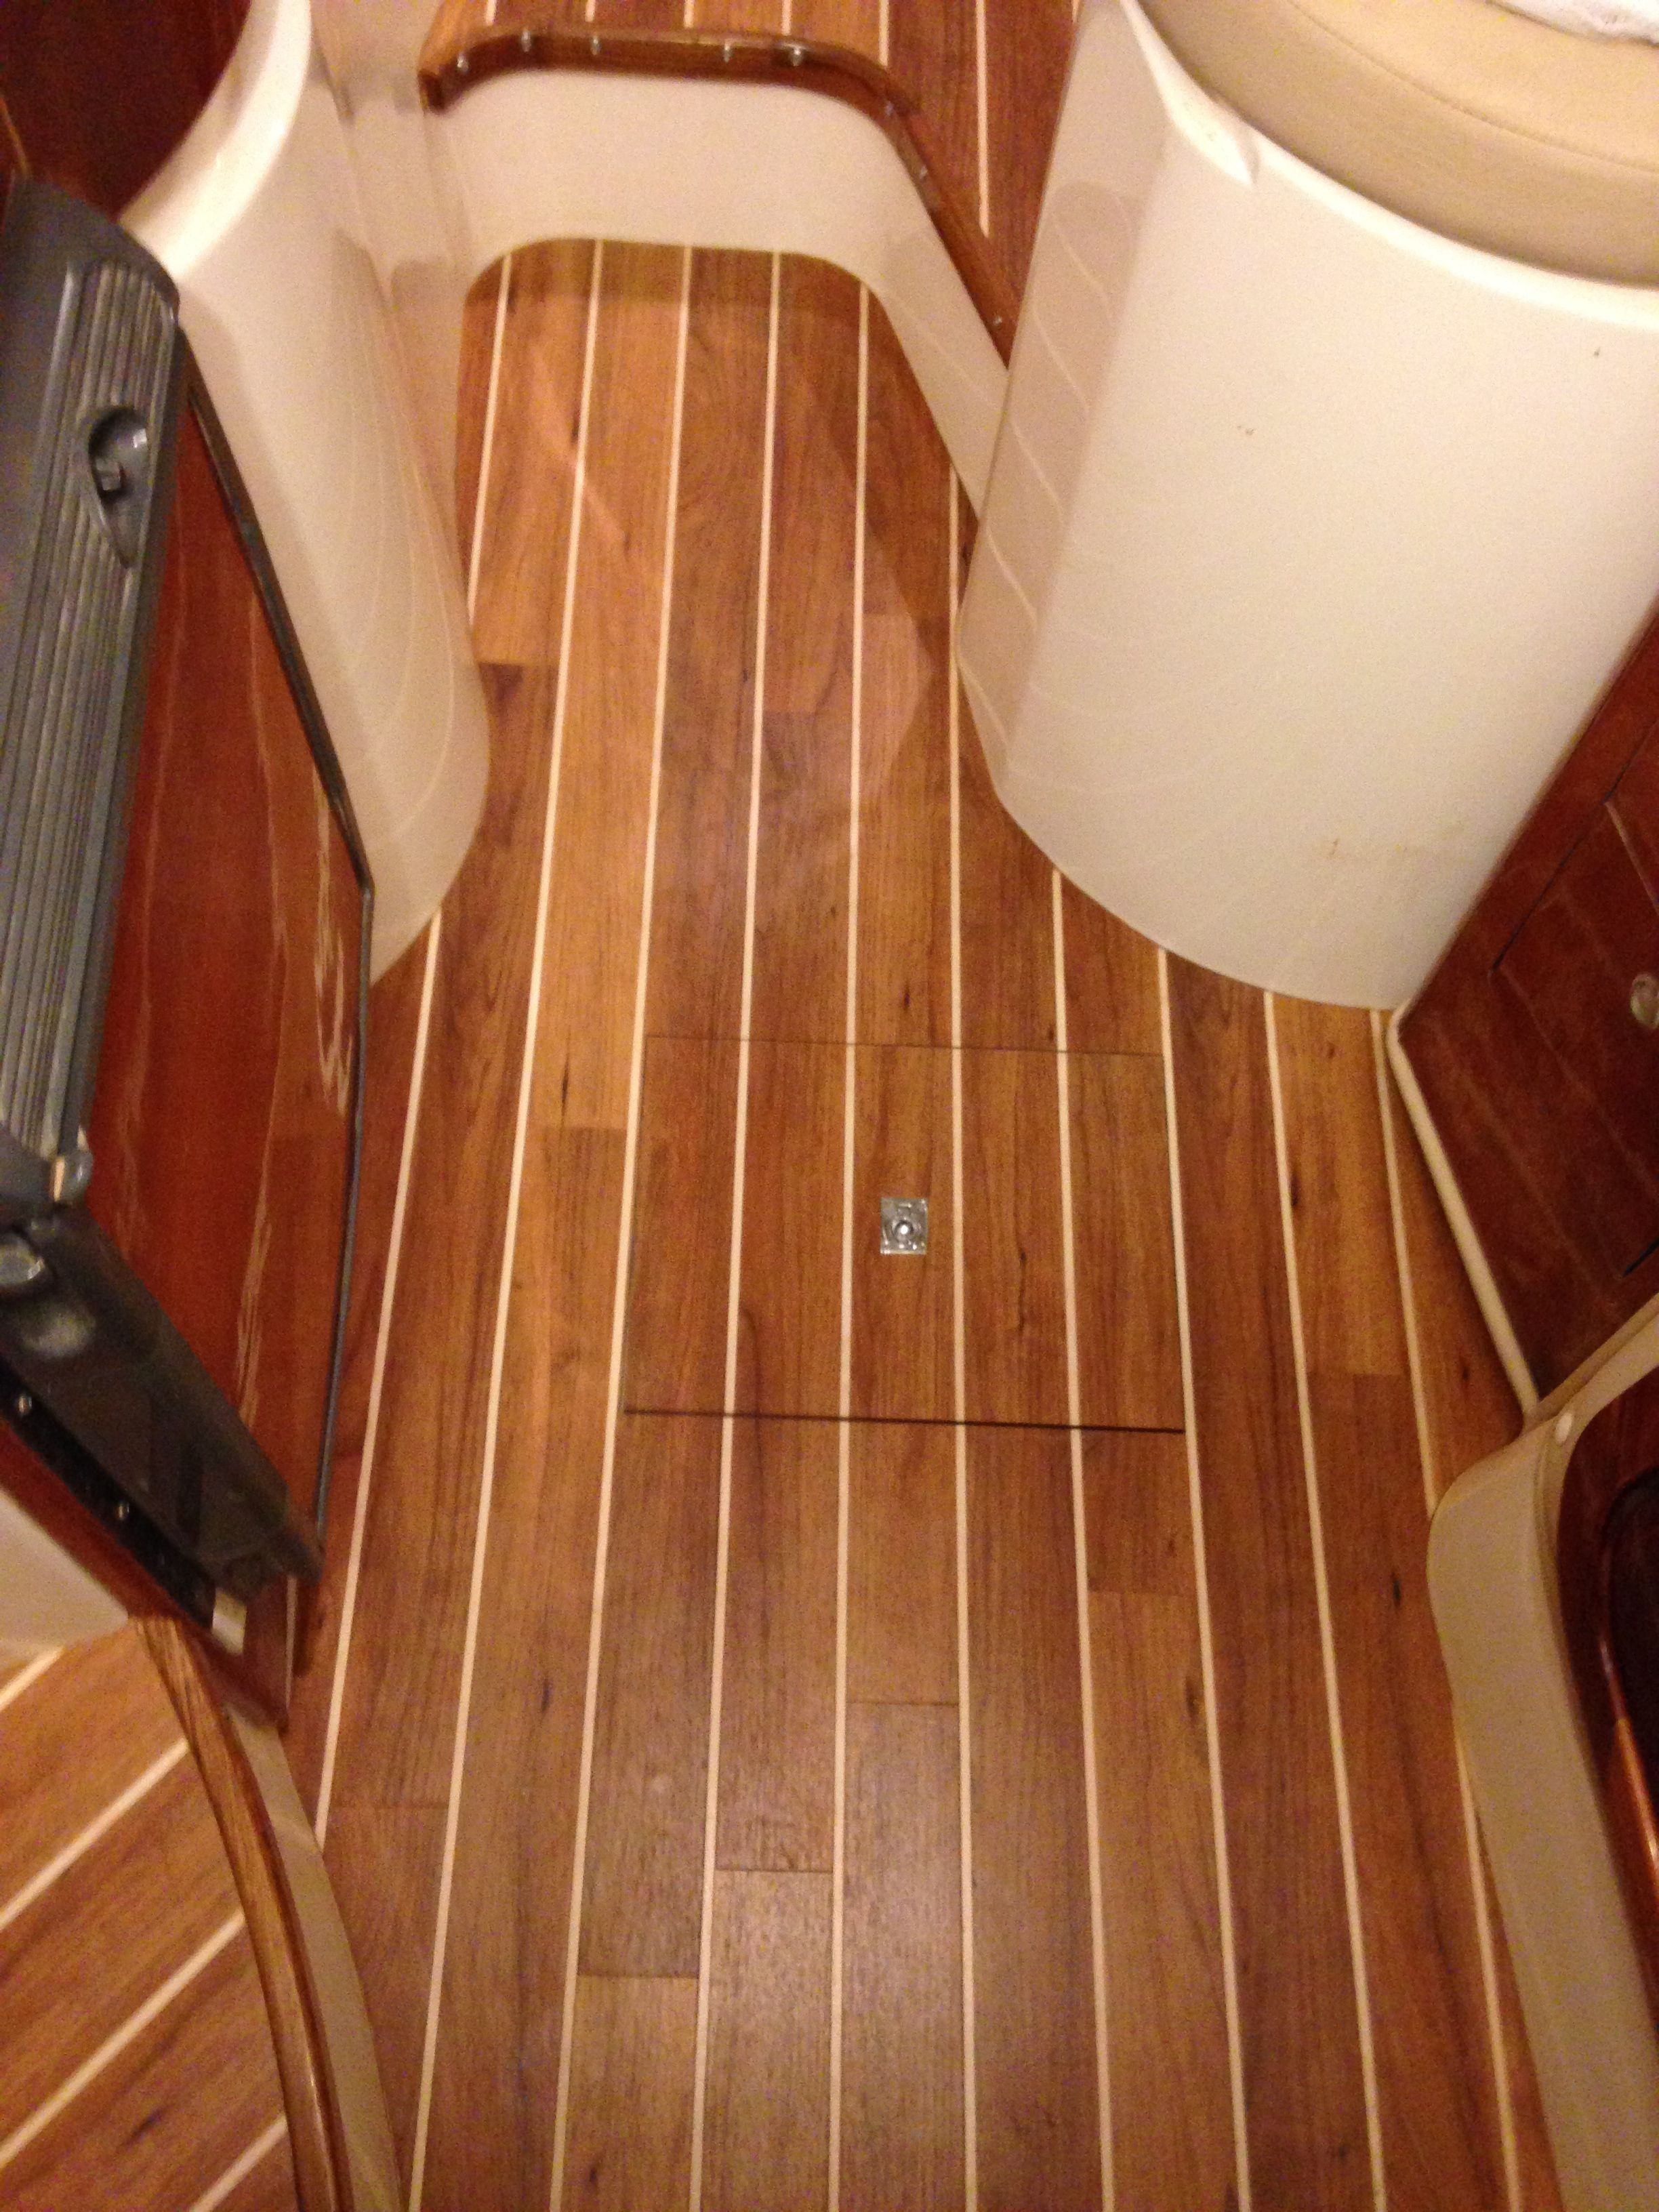 Amtico Interior Flooring Teak Decking Http Www Custommarinecarpentry Com